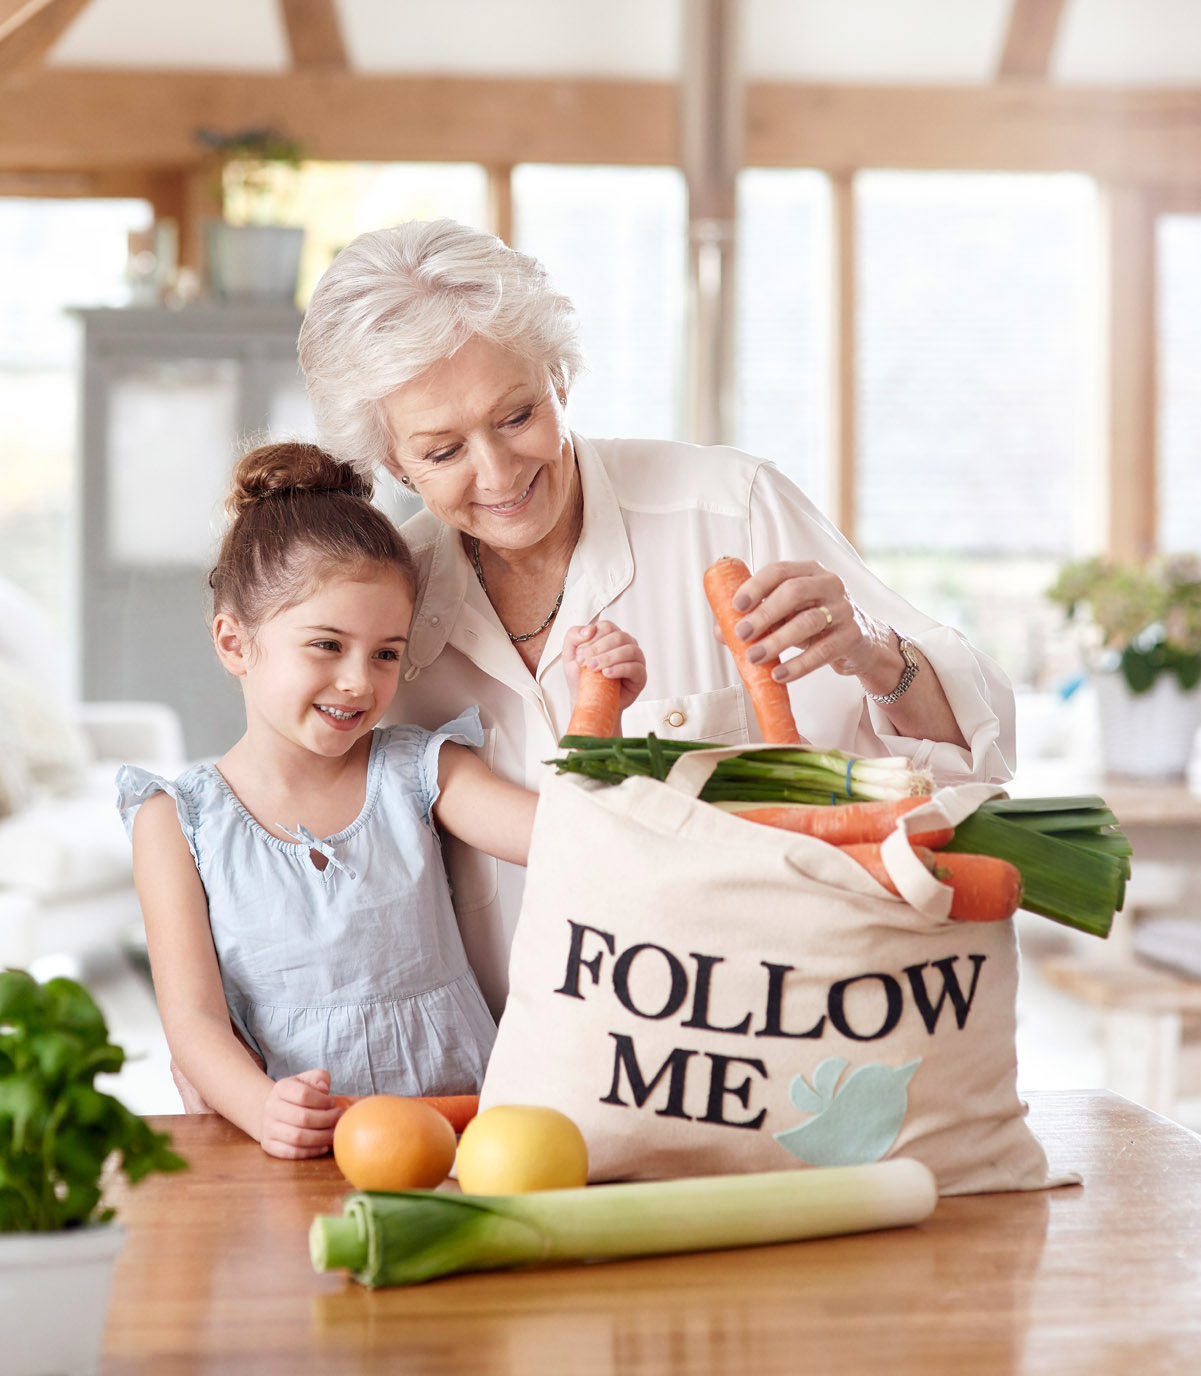 A grandma and her granddaughter unloading the shopping